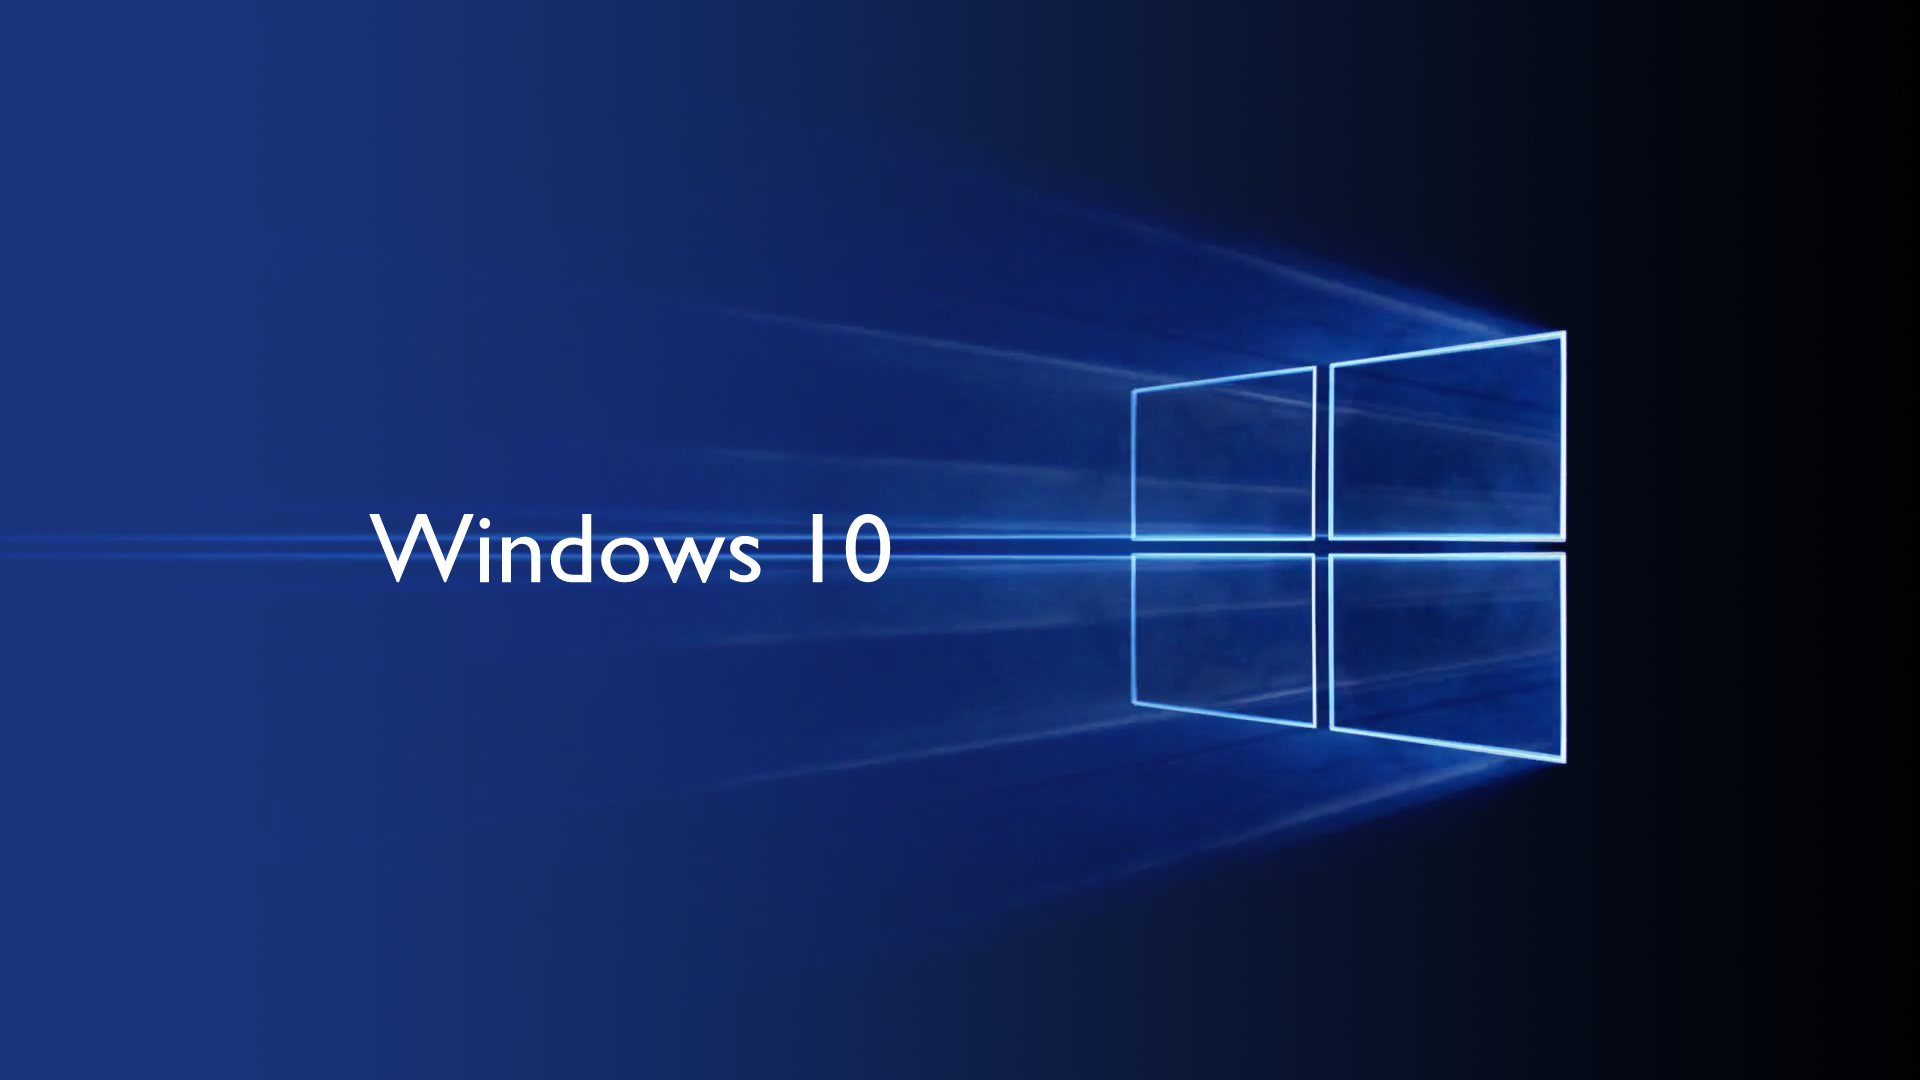 Making Windows 10 Migrations Easier with Purpose-Built Tools